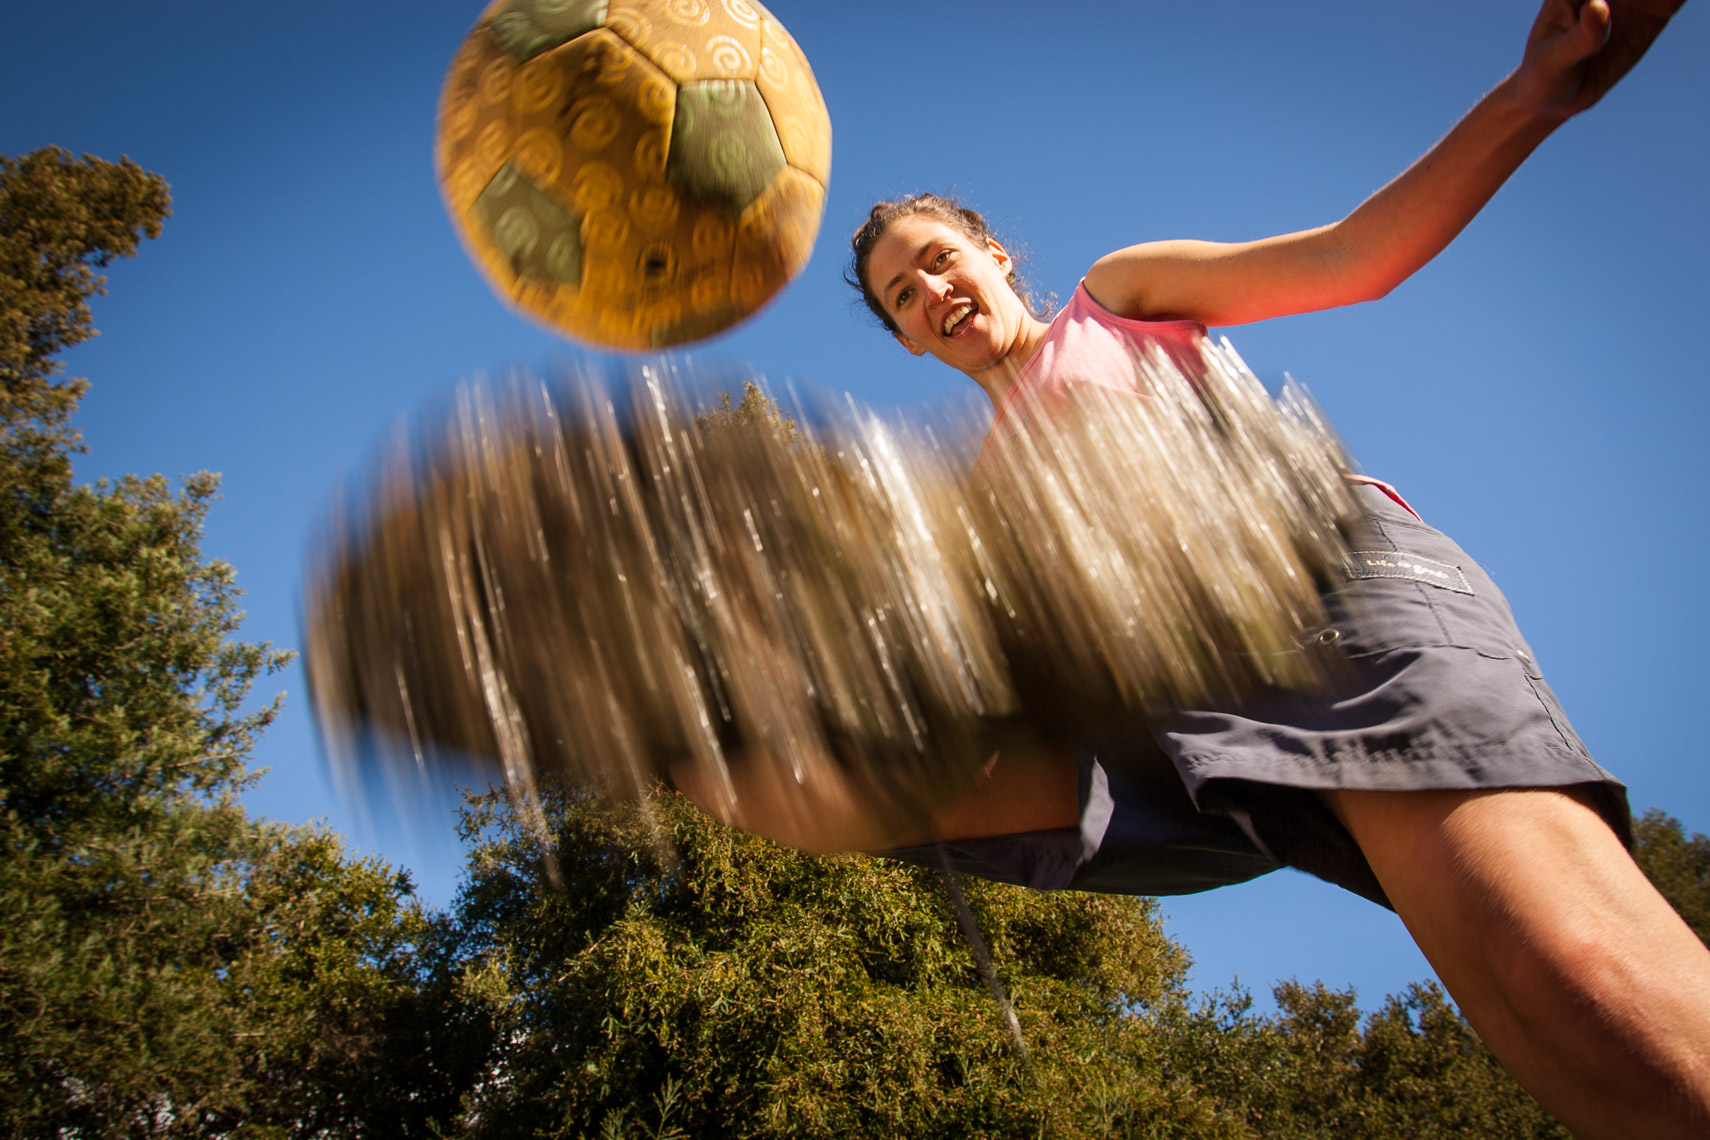 Woman Juggling a Soccer Ball